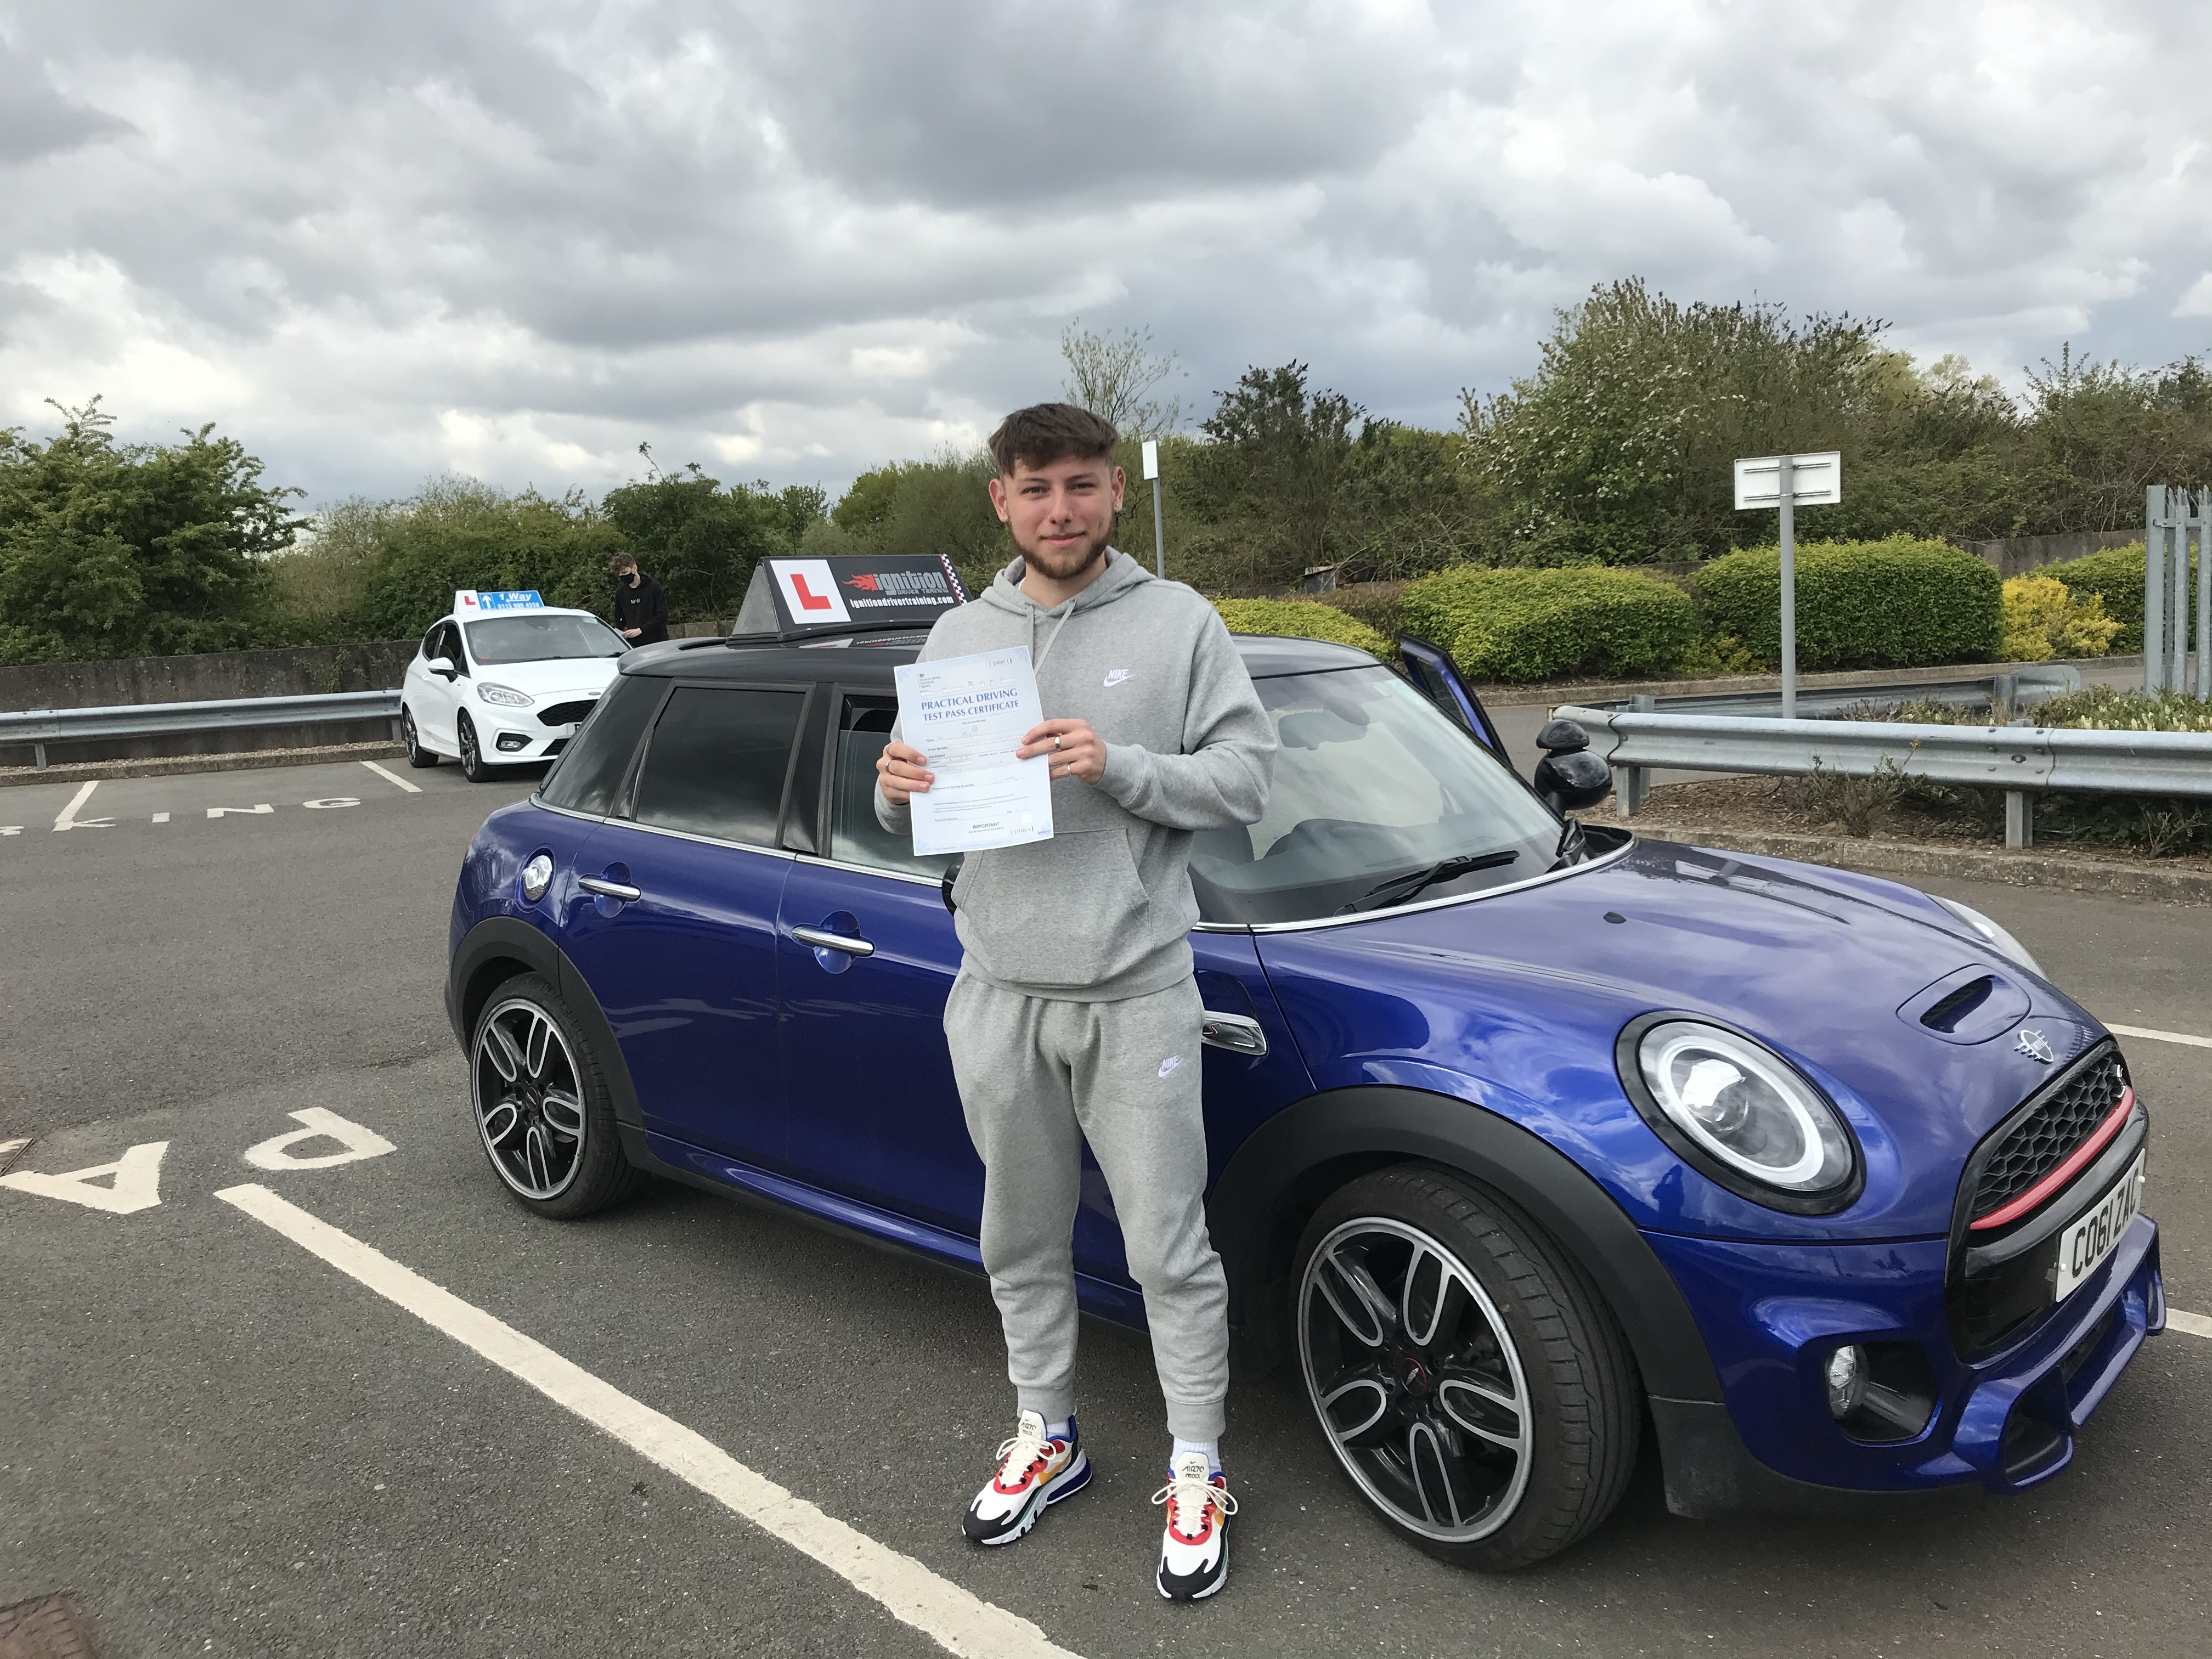 Lewis Passed First Time!